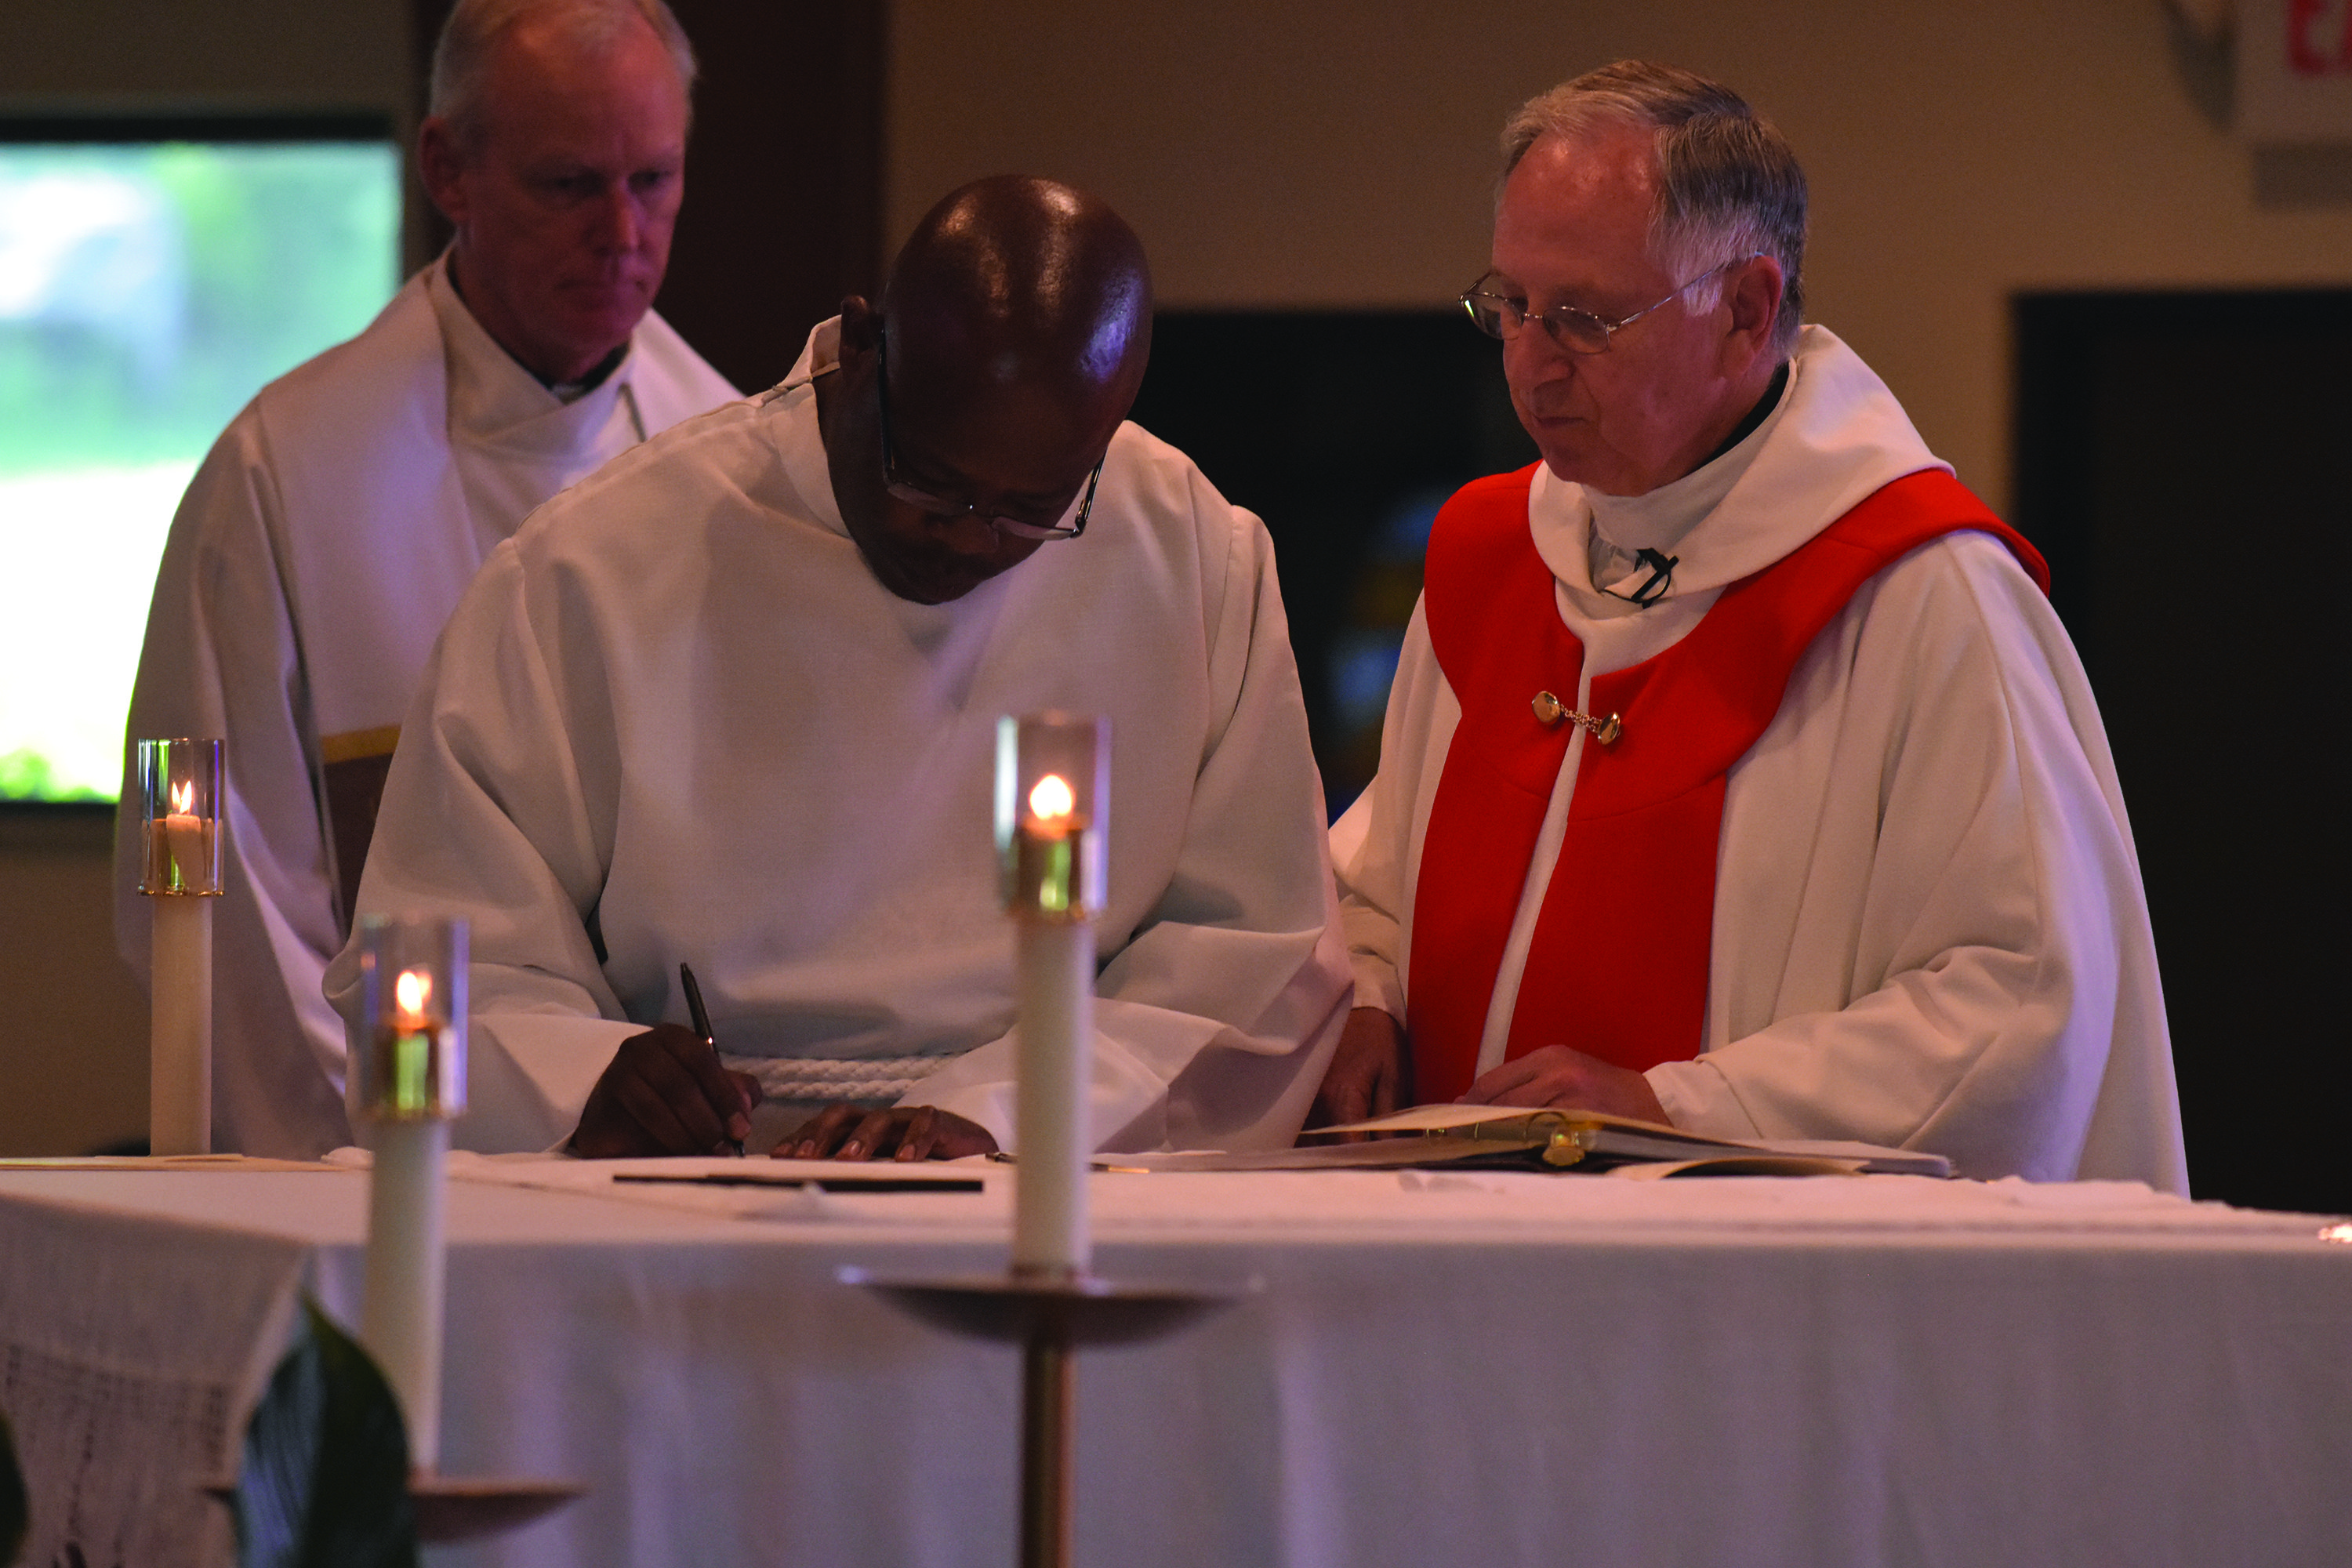 3 men profess oaths, ordained for Glenmary